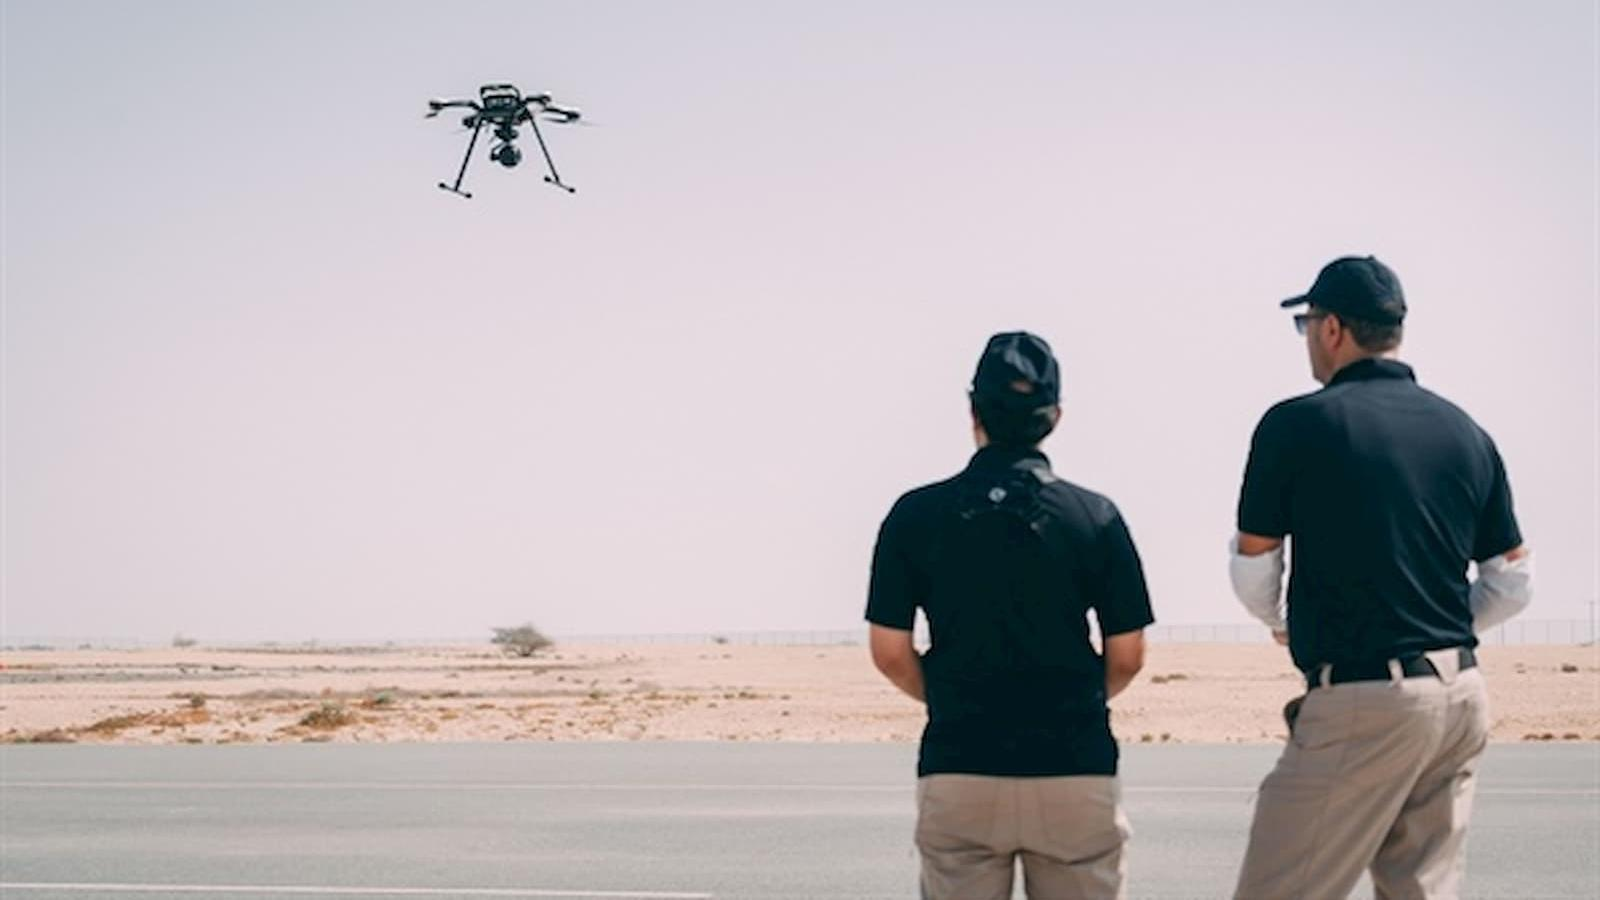 HMC introduces drones to enhance assessment of emergency scenes